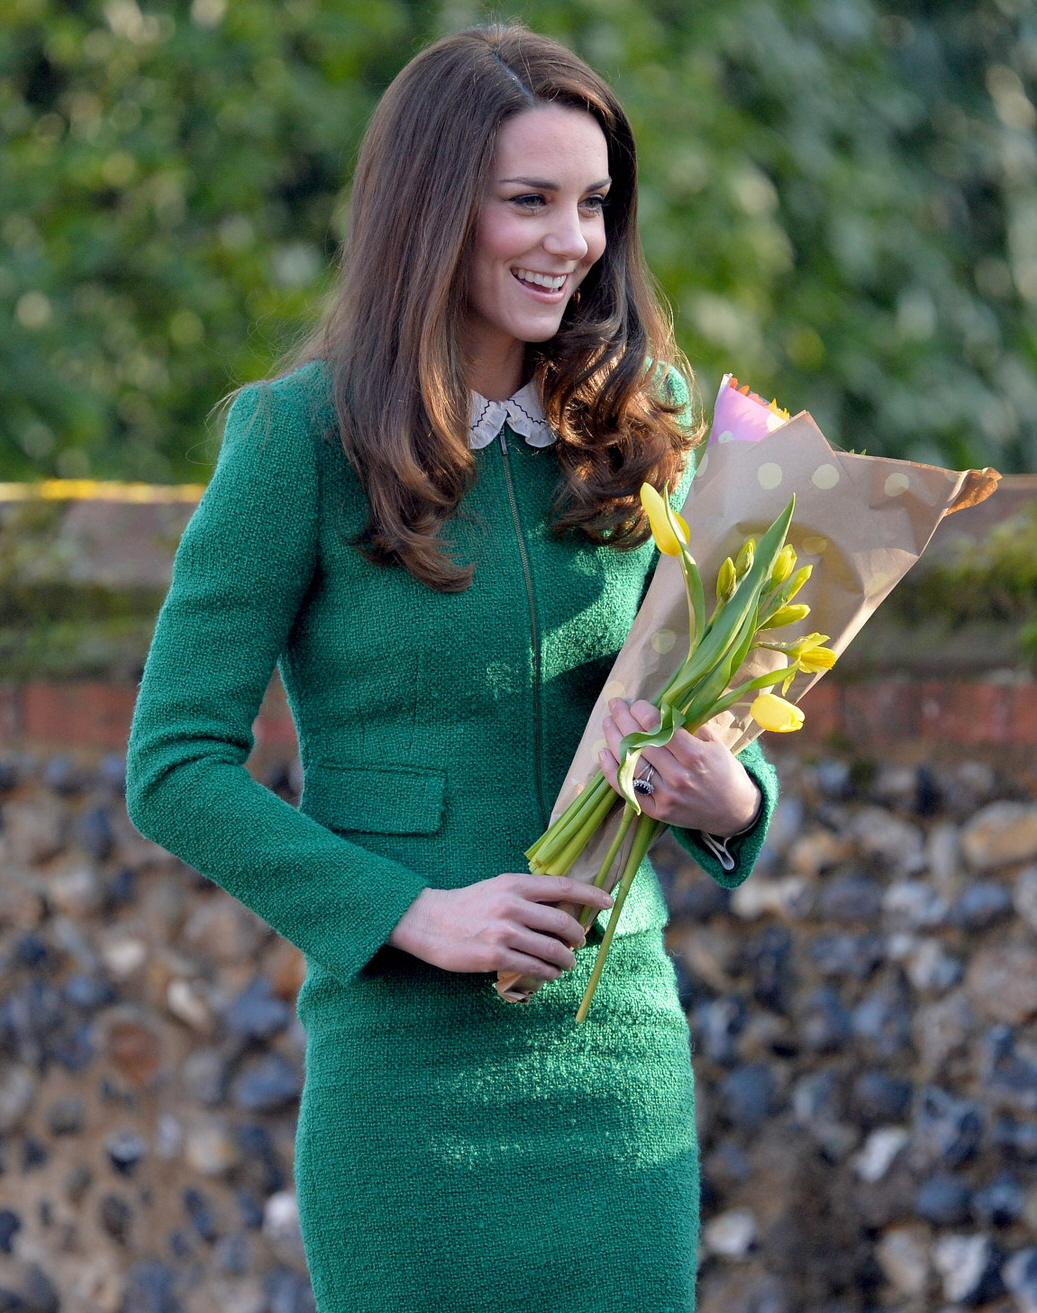 161215PCN_DuchessCambridgeMGS037  bitchy | Duchess Kate is 'fortunate' to be an actual princess as a result of she's 'properly taken care of' 161215PCN DuchessCambridgeMGS037